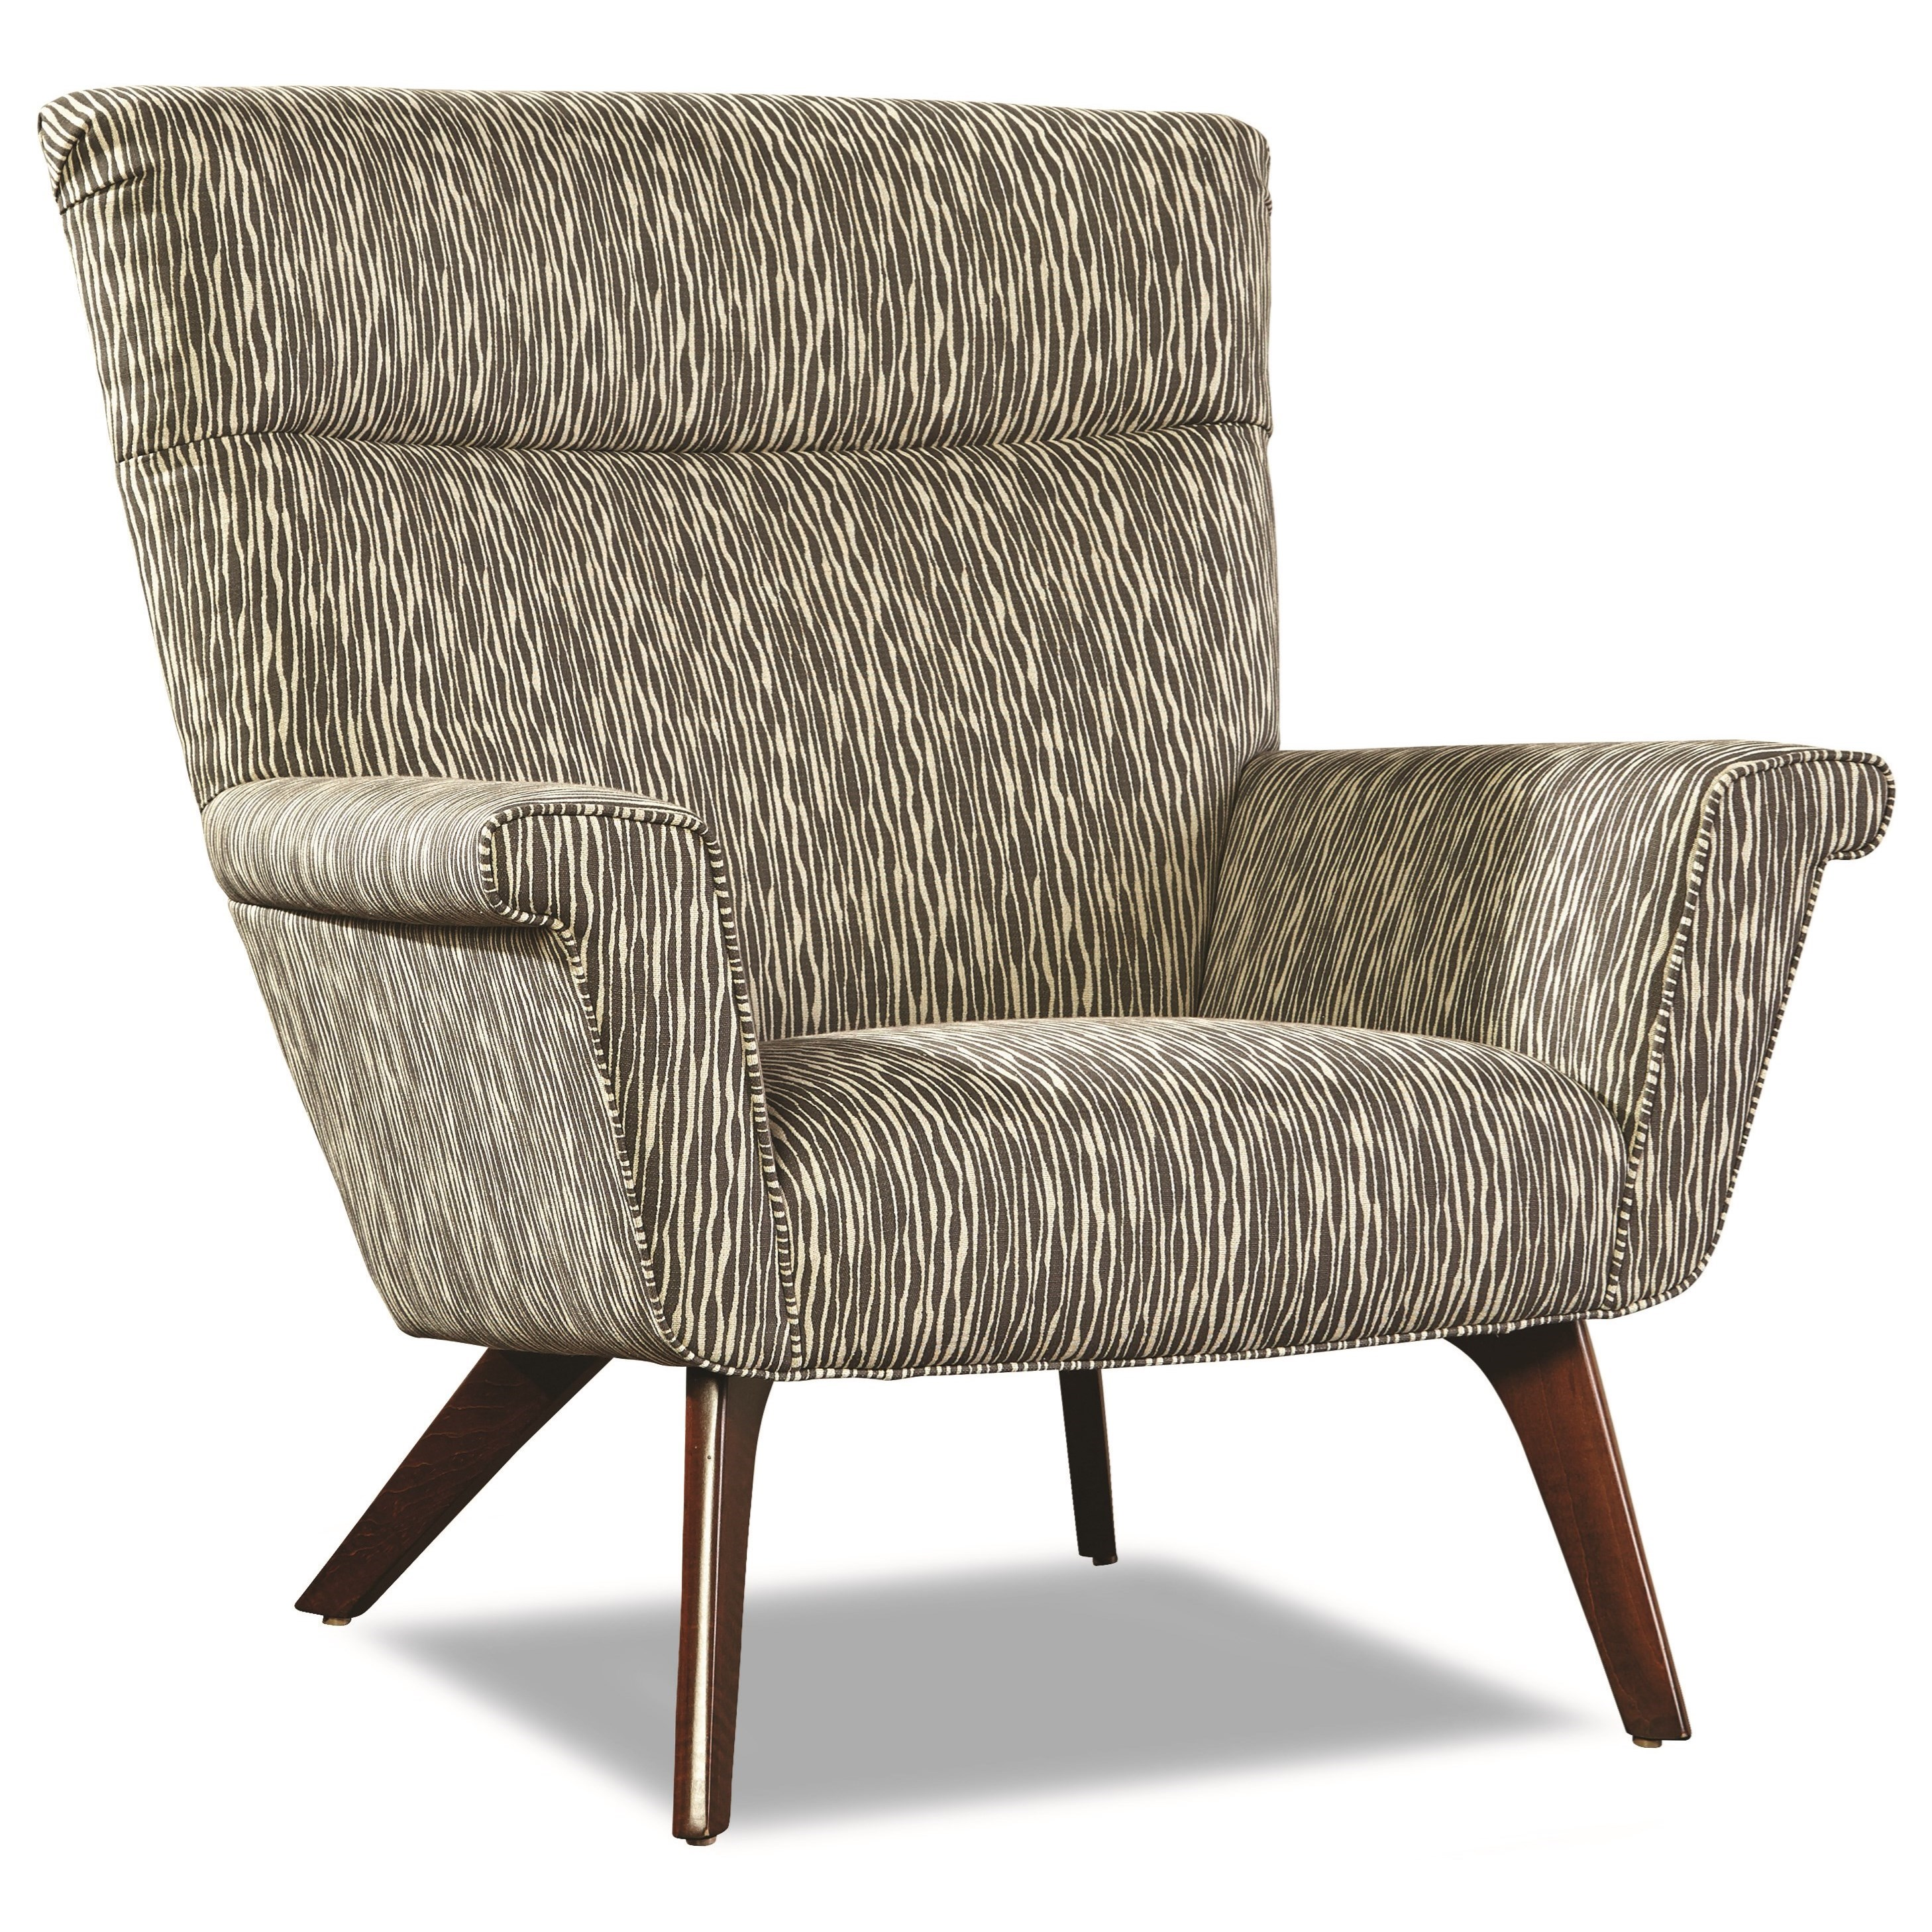 7723 Upholstered Accent Chair by Geoffrey Alexander at Sprintz Furniture